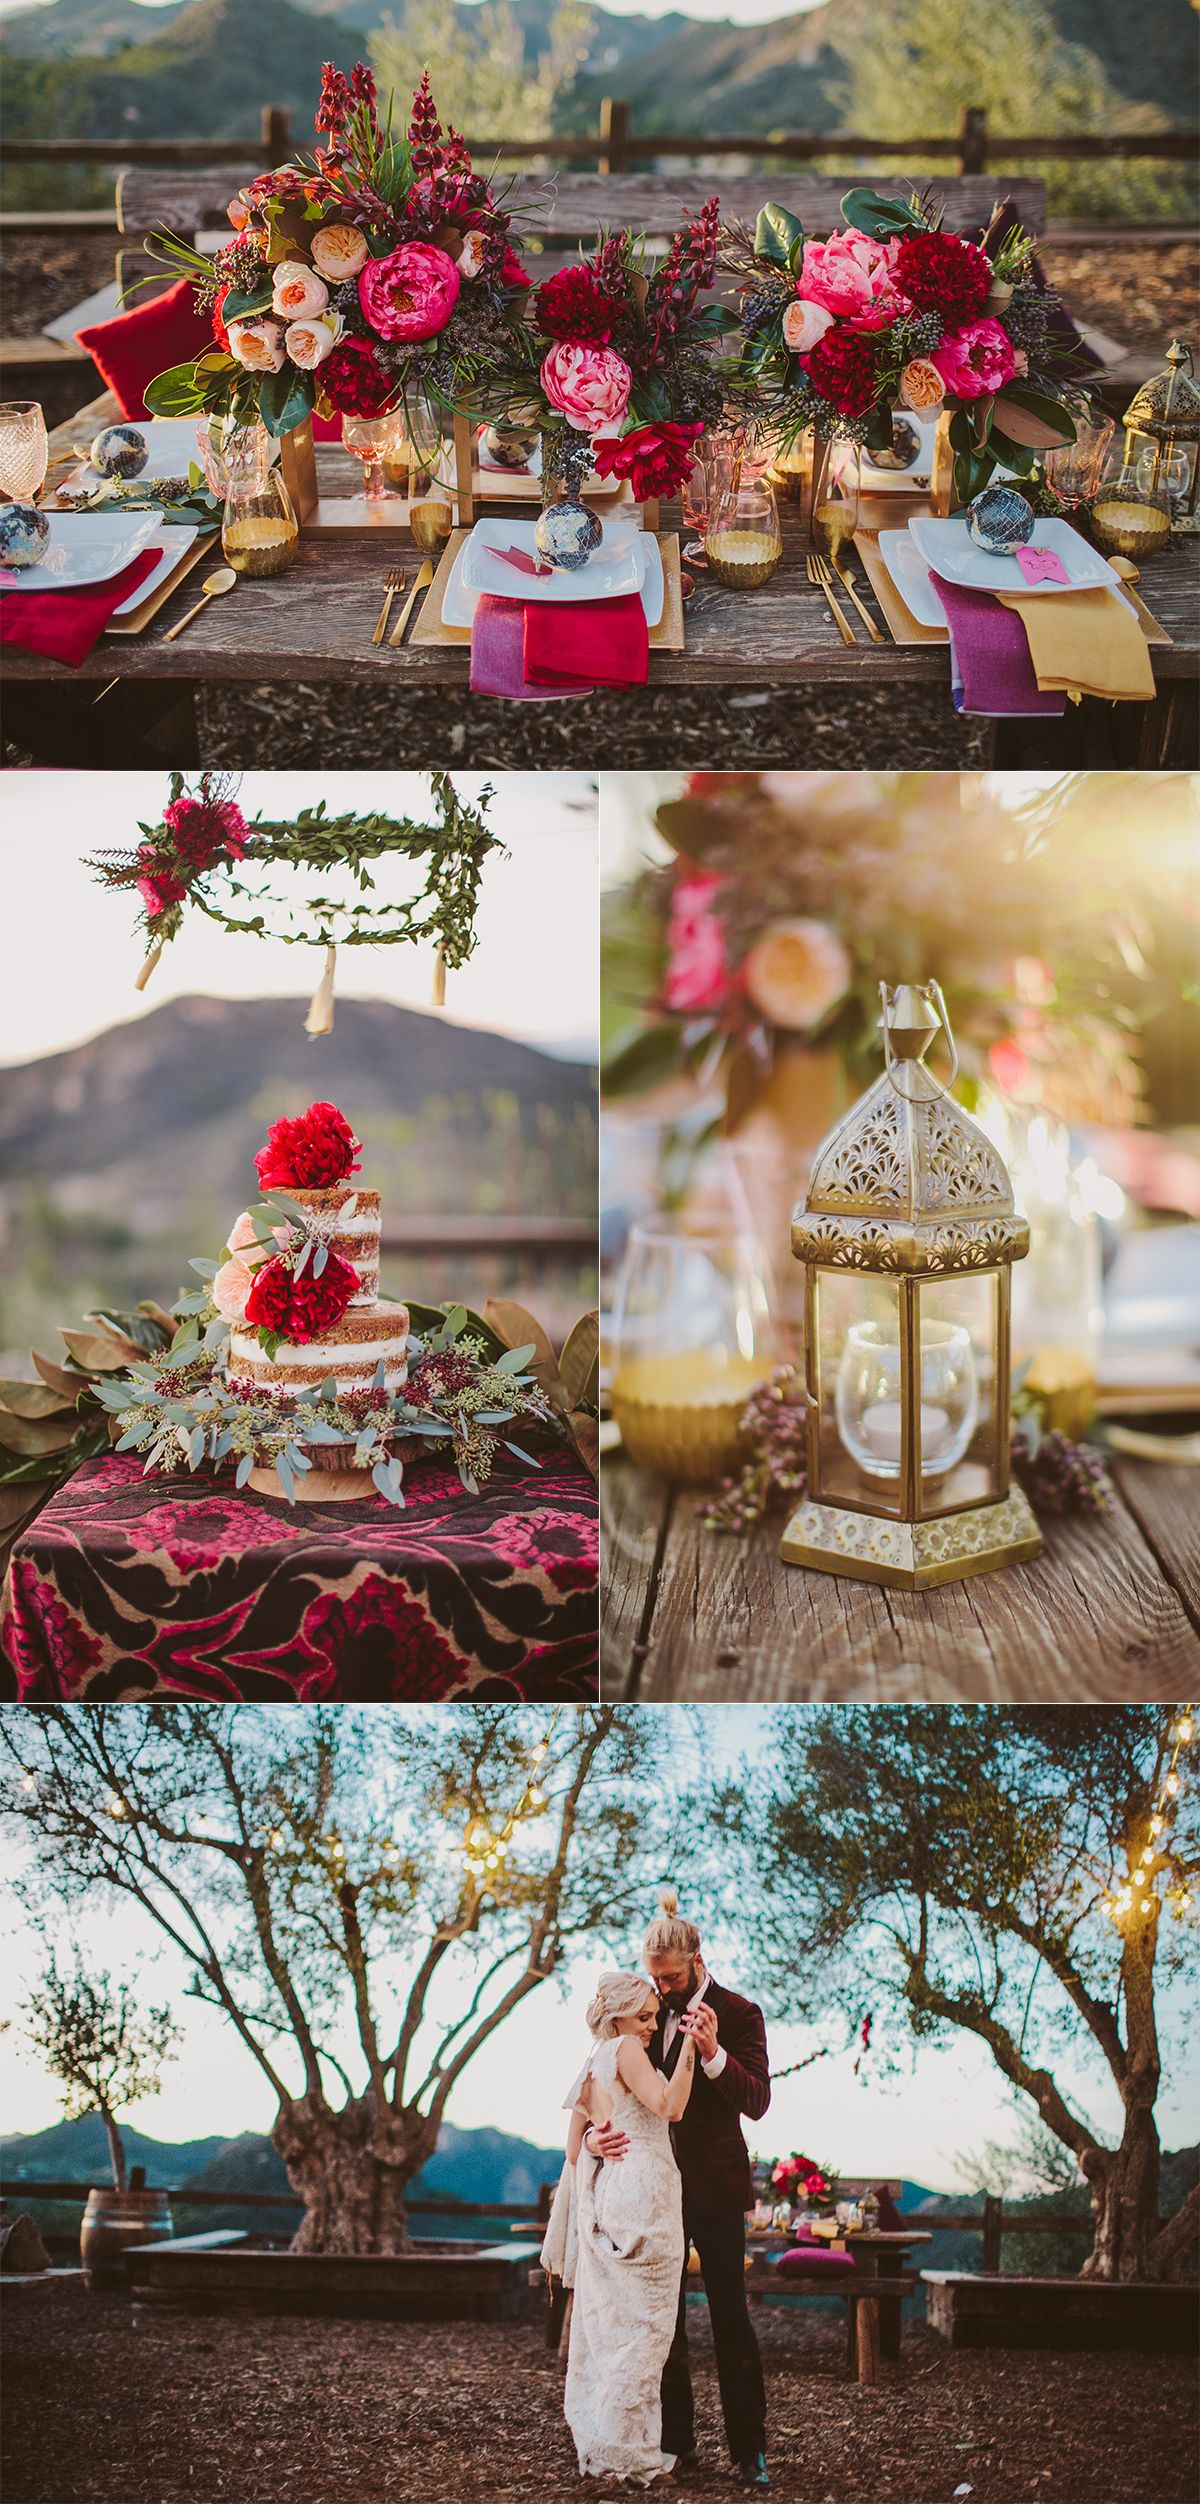 A Whimiscal Bohemian Wedding At Cielo Farms Venue In